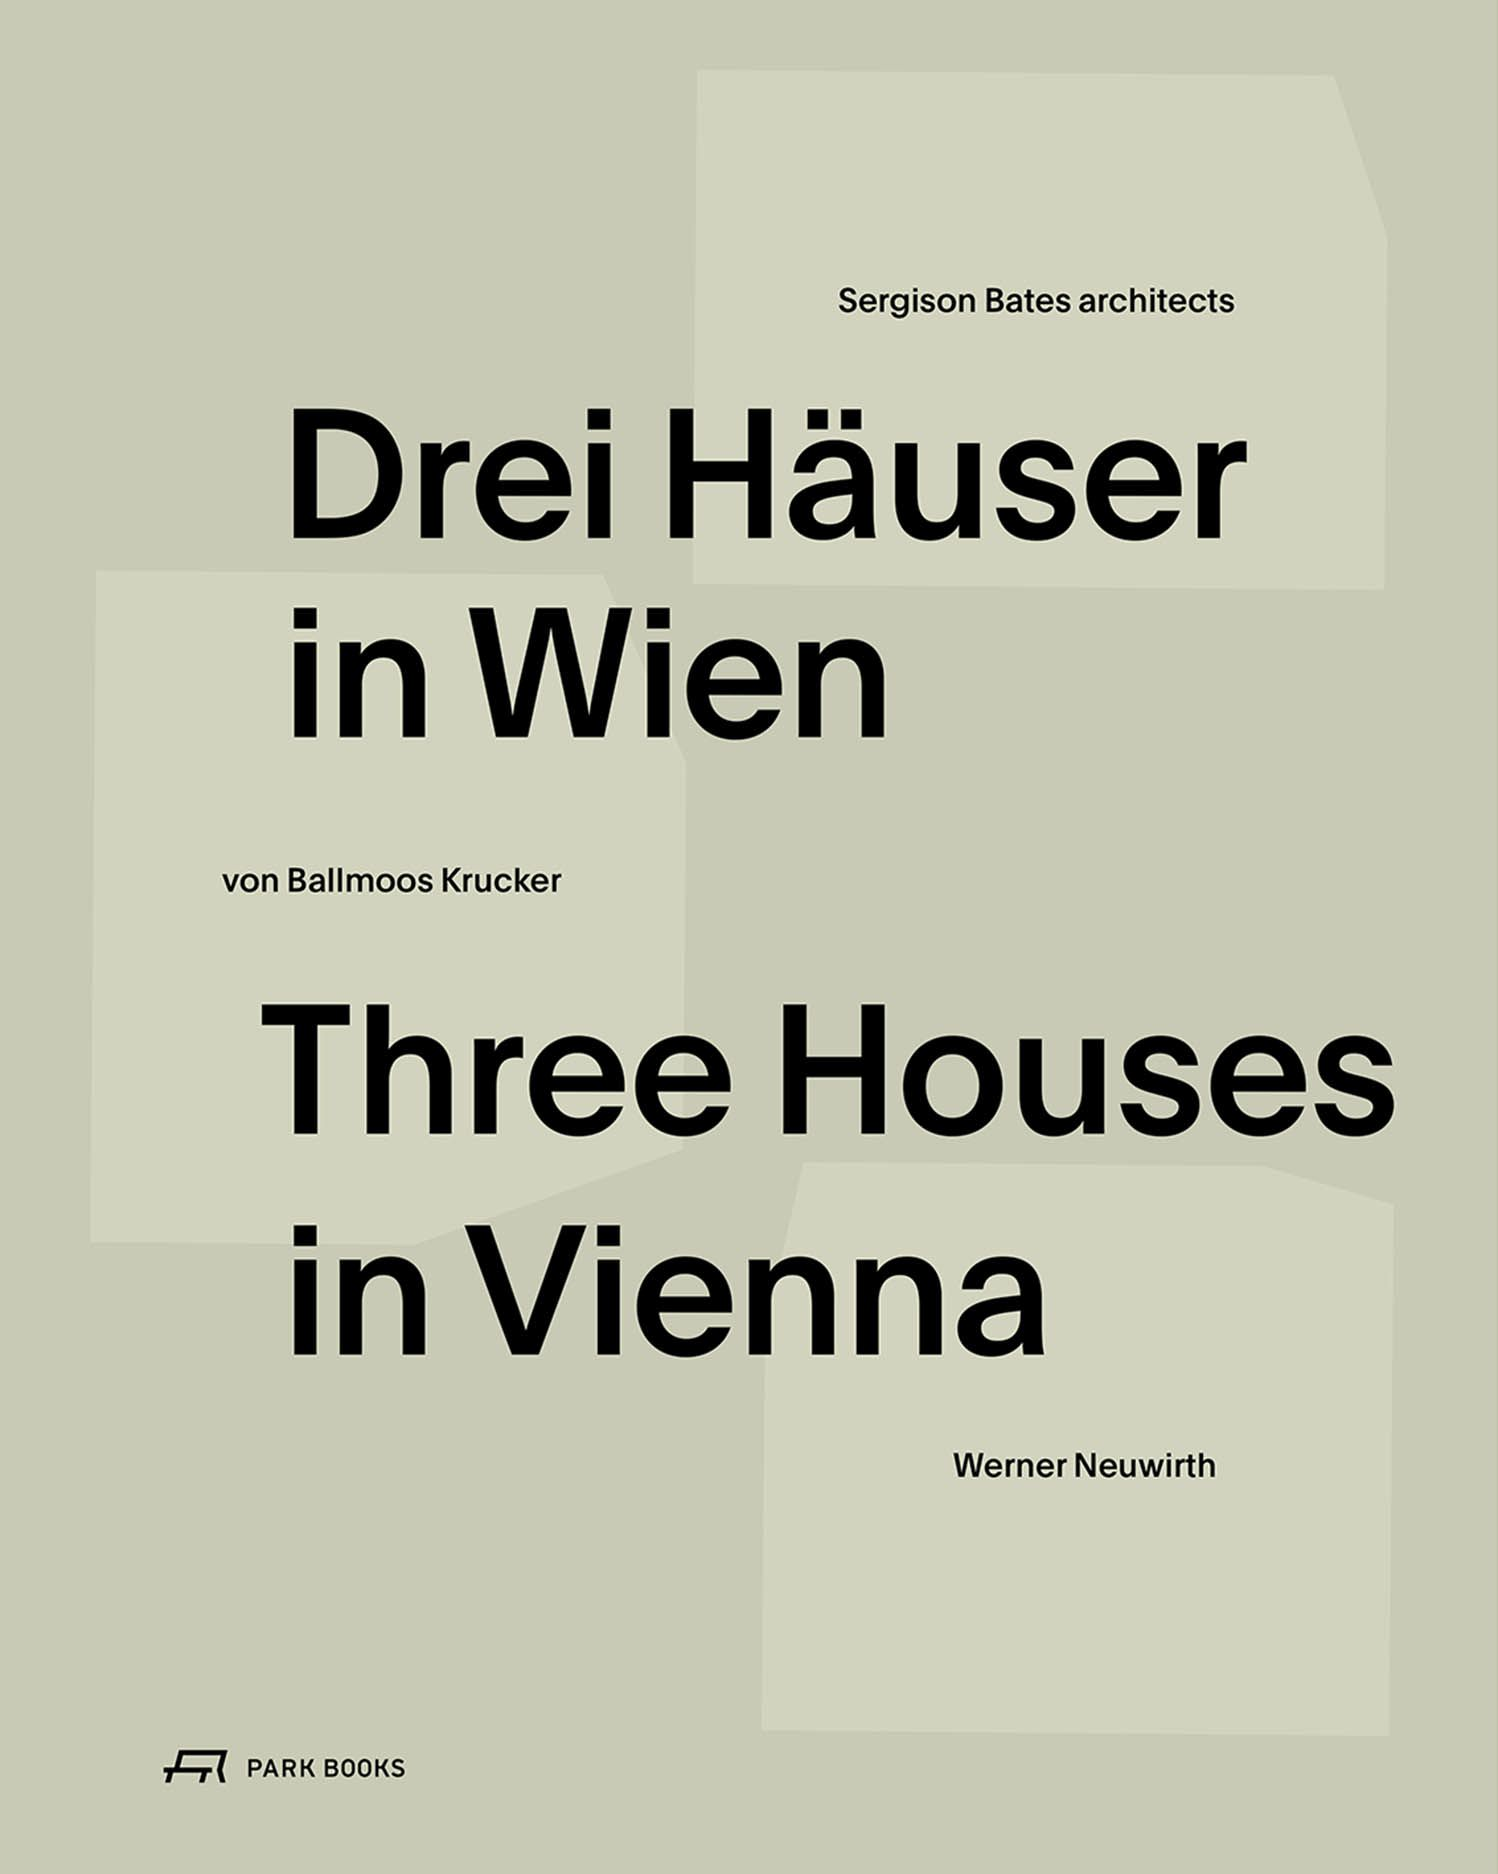 Three Houses in Vienna: Residential Buildings by Werner Neuwirth, Krucker von Ballmoos, Sergison Bates